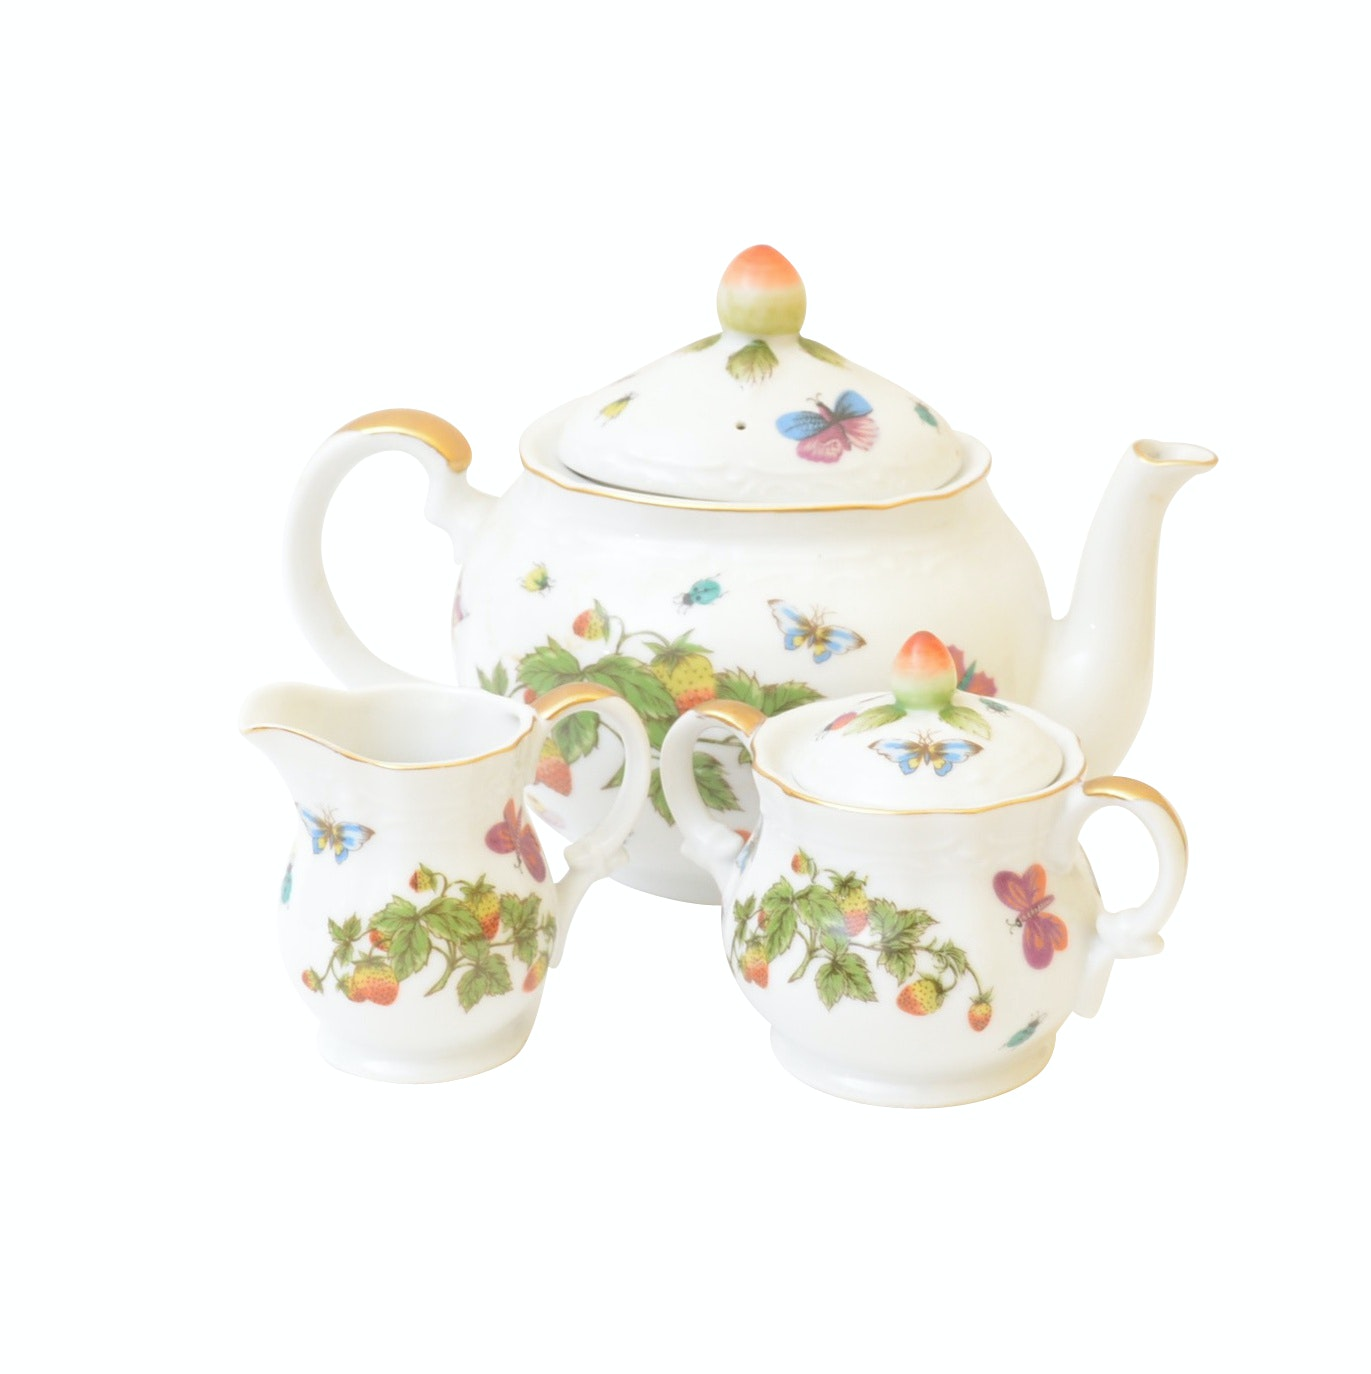 Hand-Painted Ardalt Tea Service Set and Assorted Tableware